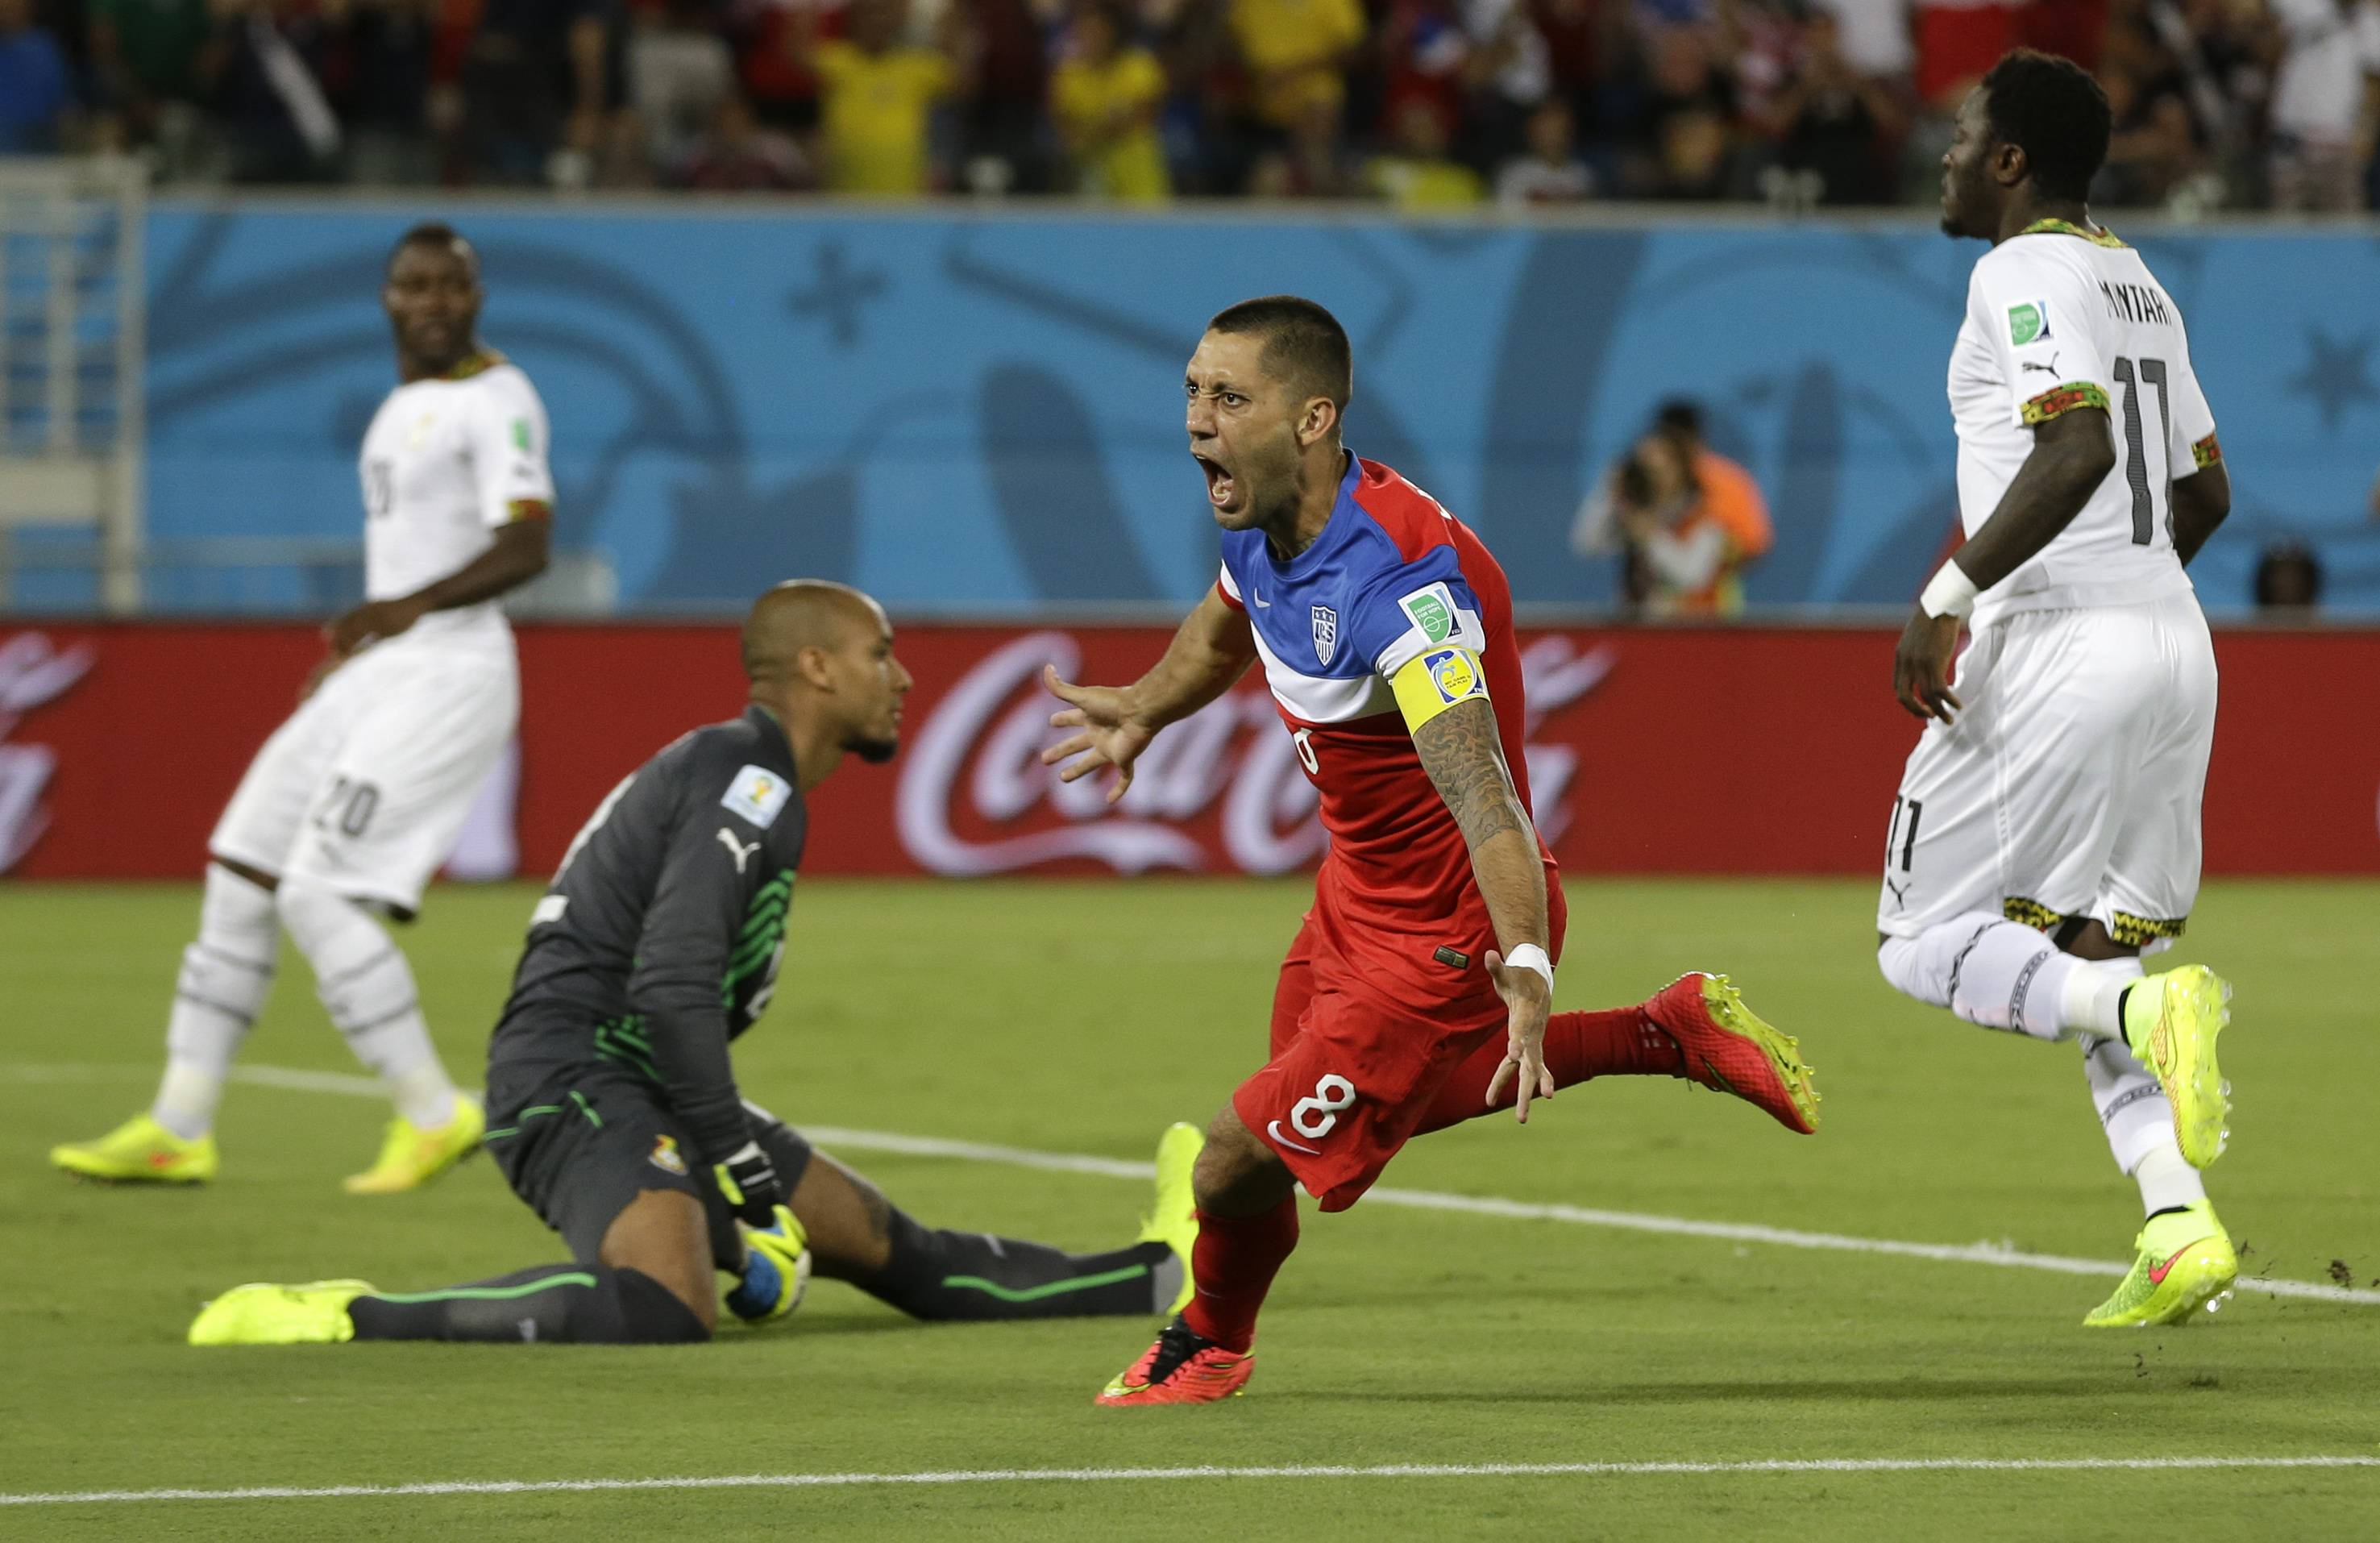 The United States' Clint Dempsey celebrates after scoring the opening goal in Monday night's World Cup match against Ghana in Natal, Brazil. The Americans won 2-1.